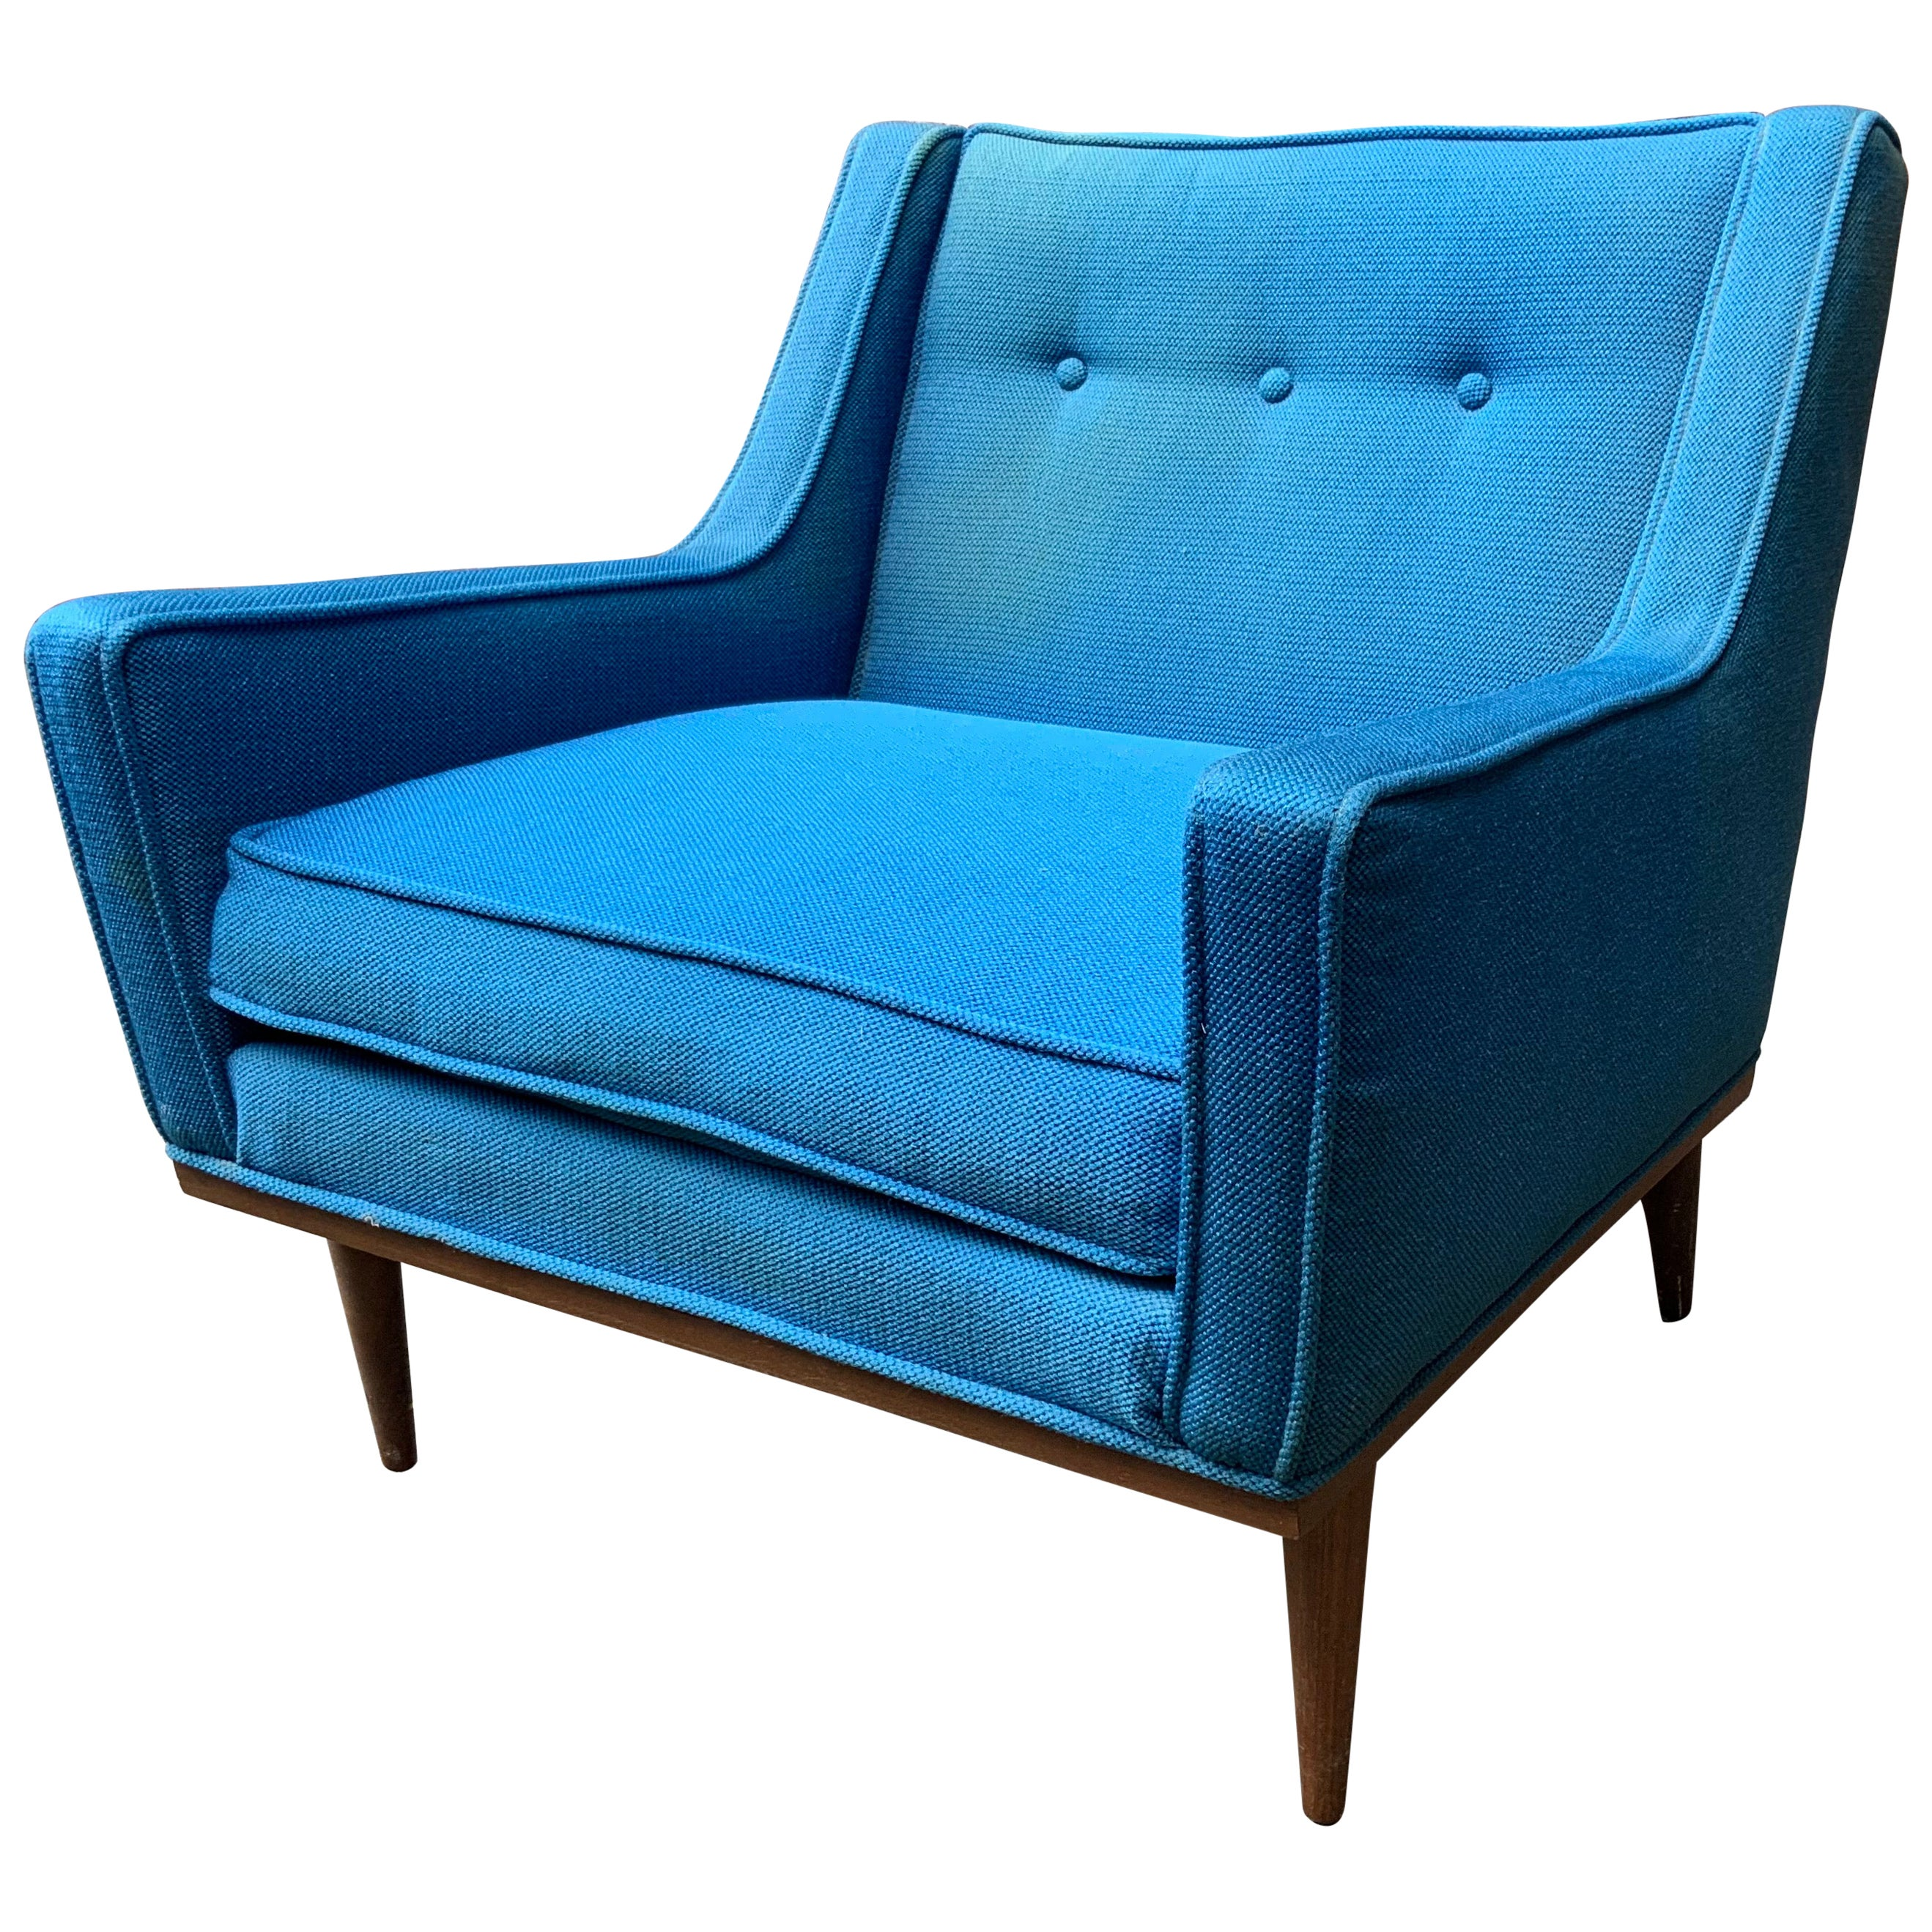 Milo Baughman for James Incorporated Upholstered Armchair